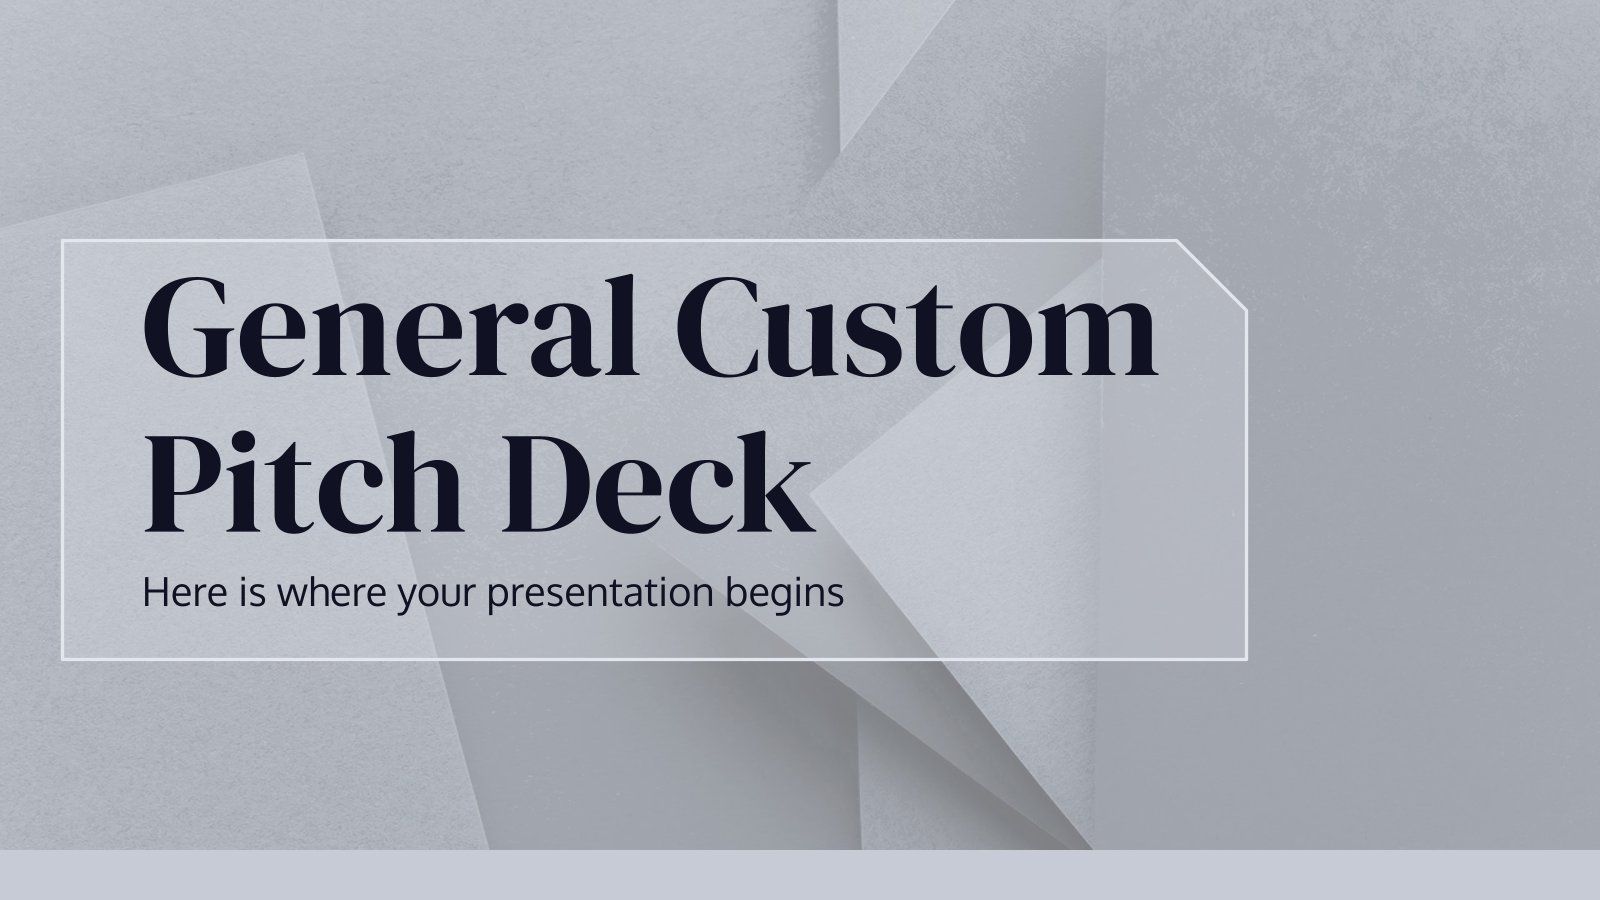 General Custom Pitch Deck presentation template